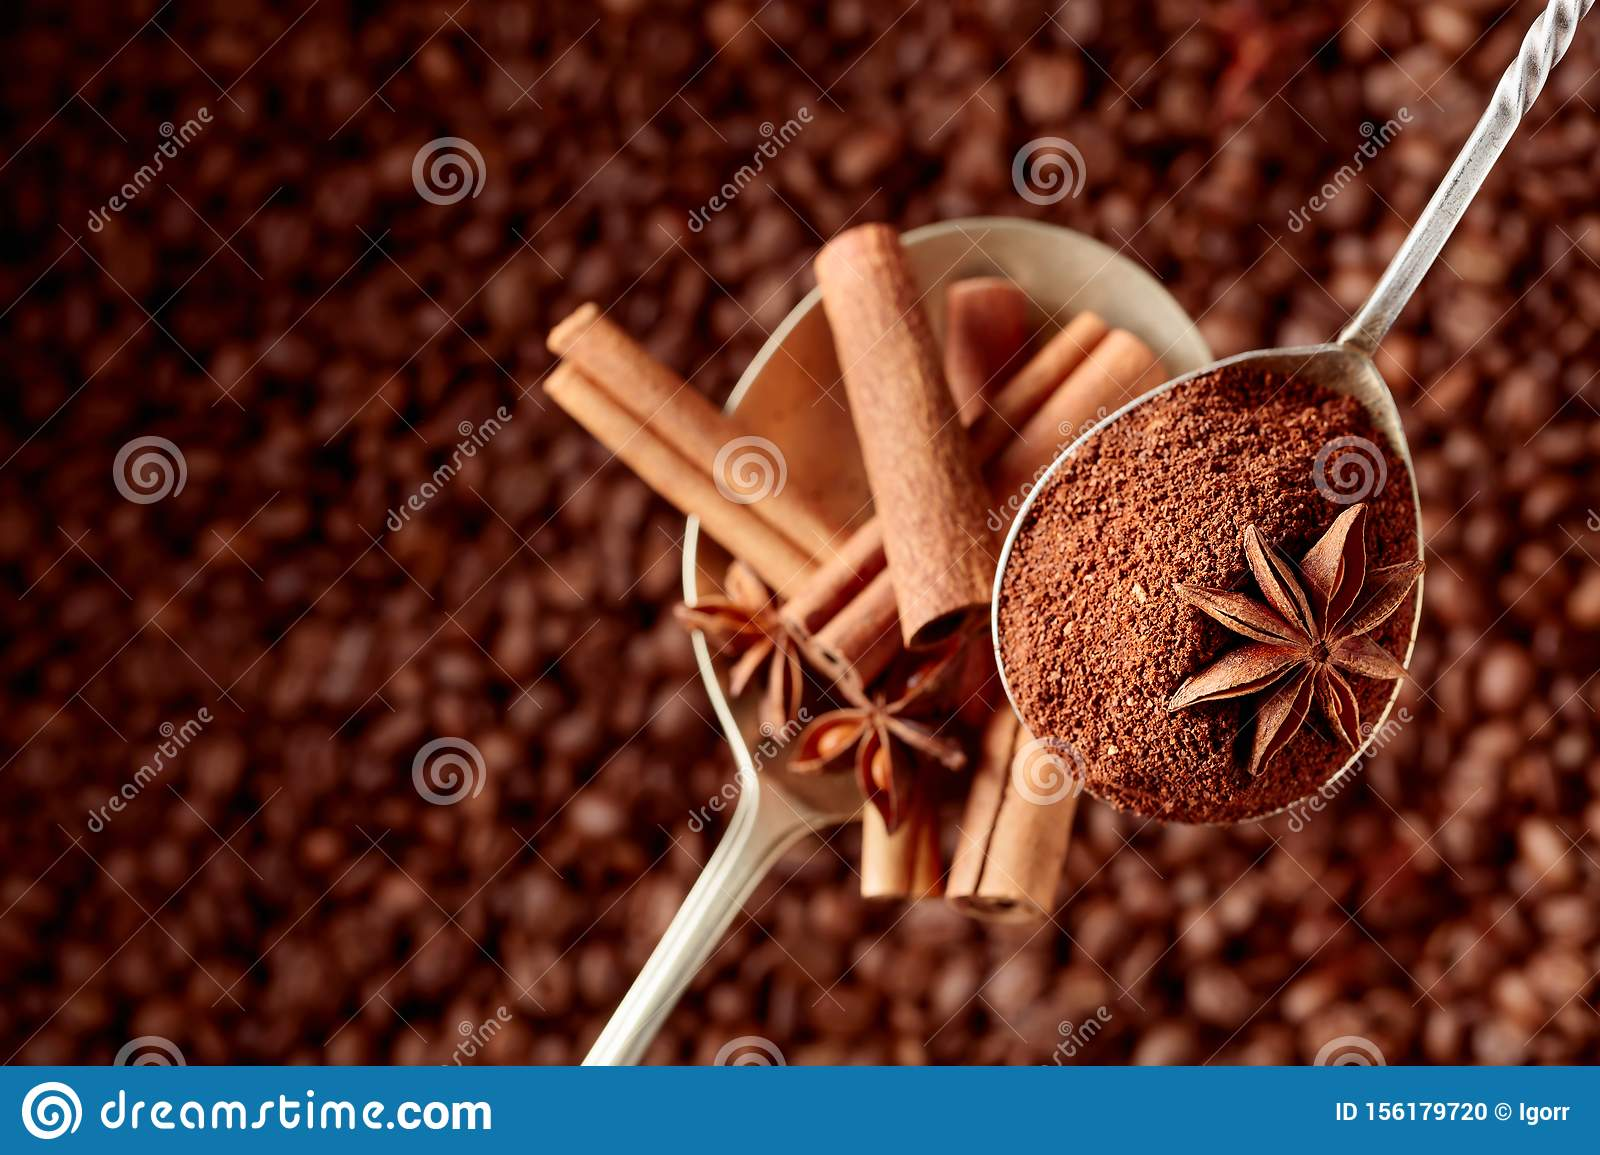 Spoons of ground coffee and anise with cinnamon sticks